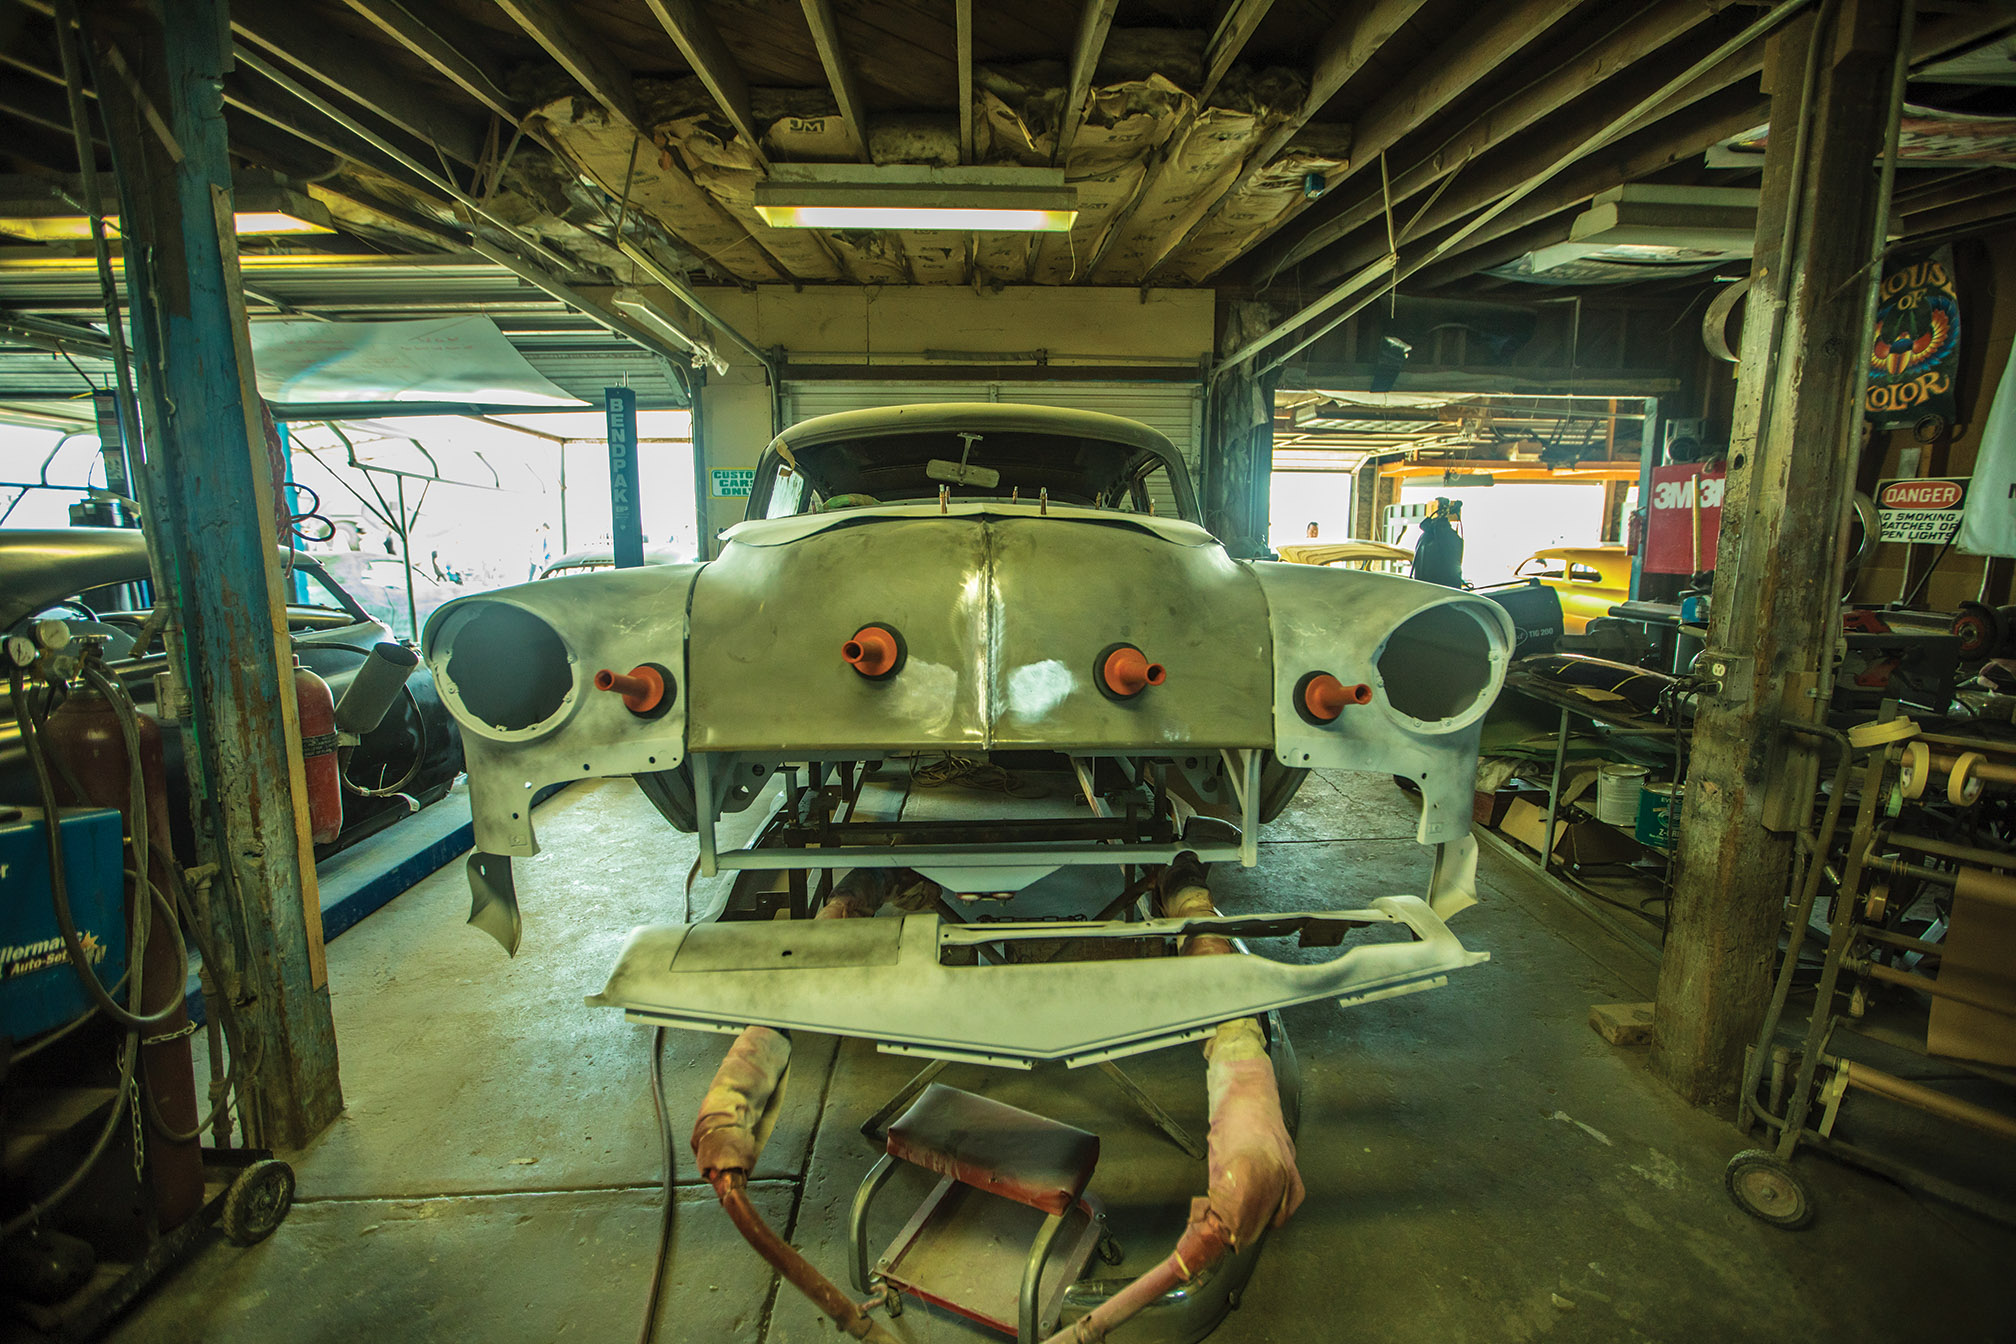 Ready for its facelift, a 1954 Chevy from Australia awaits a front bumper from a '57 Chevy and some reworking of older mods before going under the sander for a famous Winfield Fade paint job.